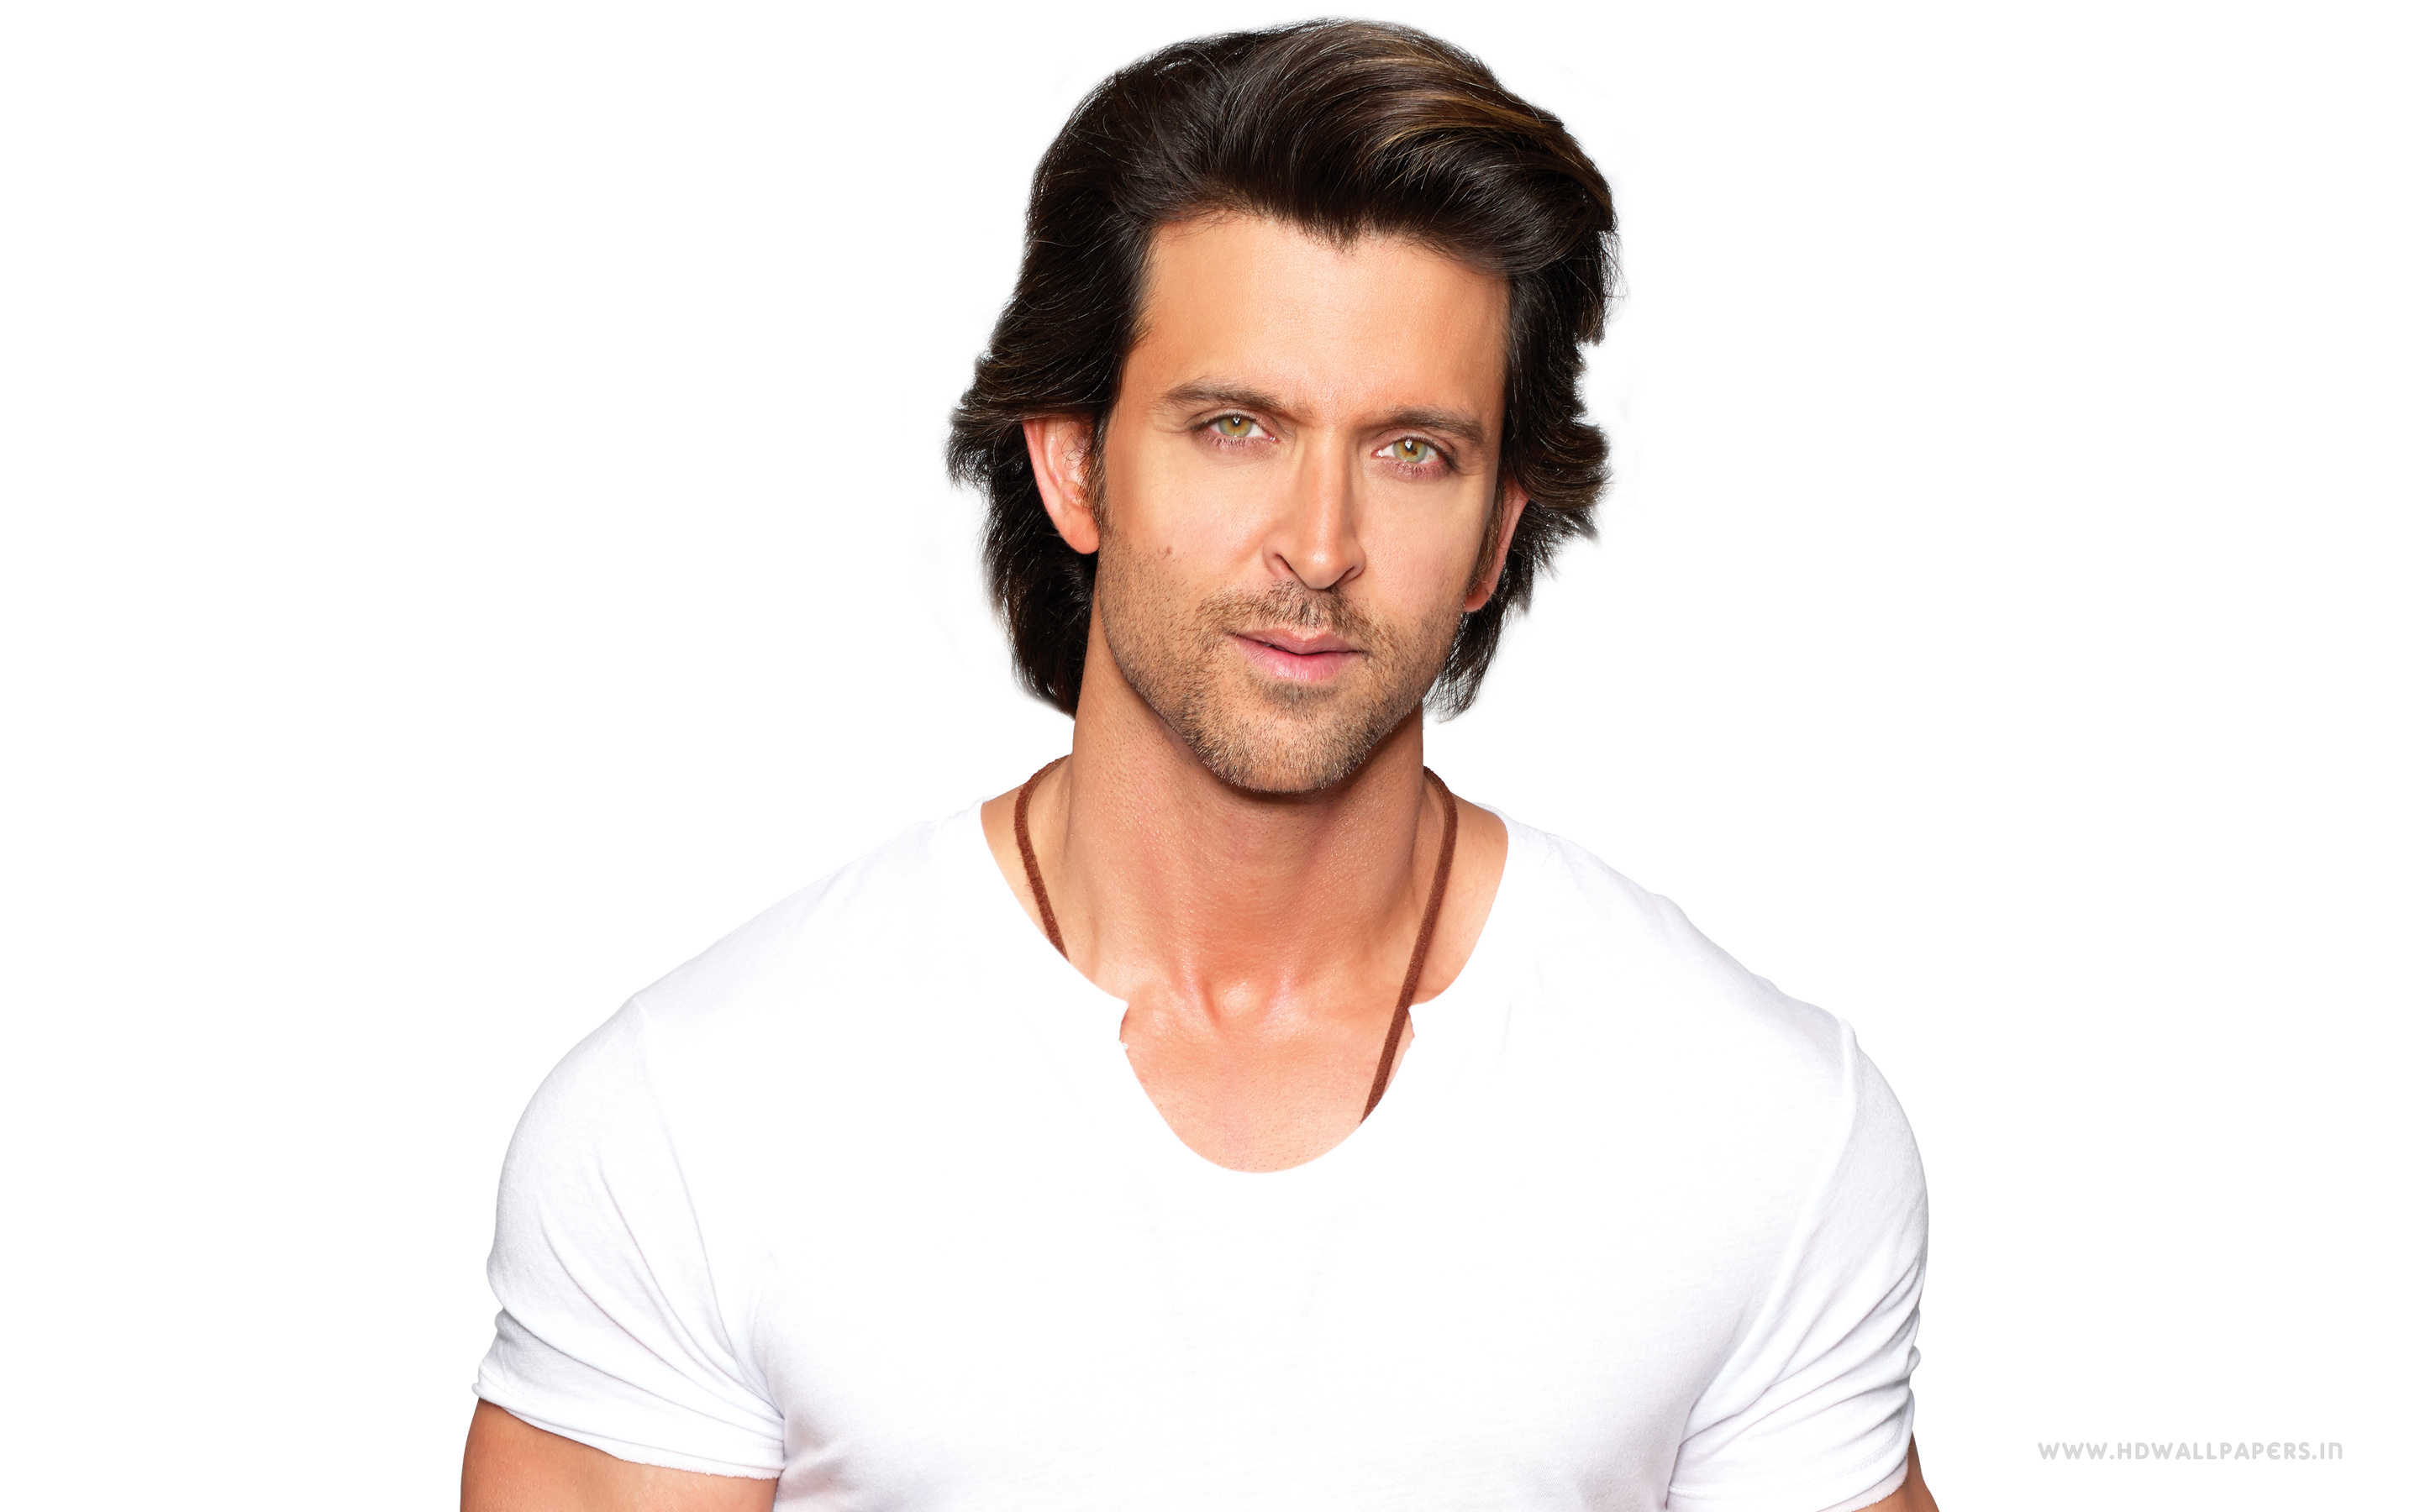 Hrithik Wallpapers, Photos And Desktop Backgrounds Up To